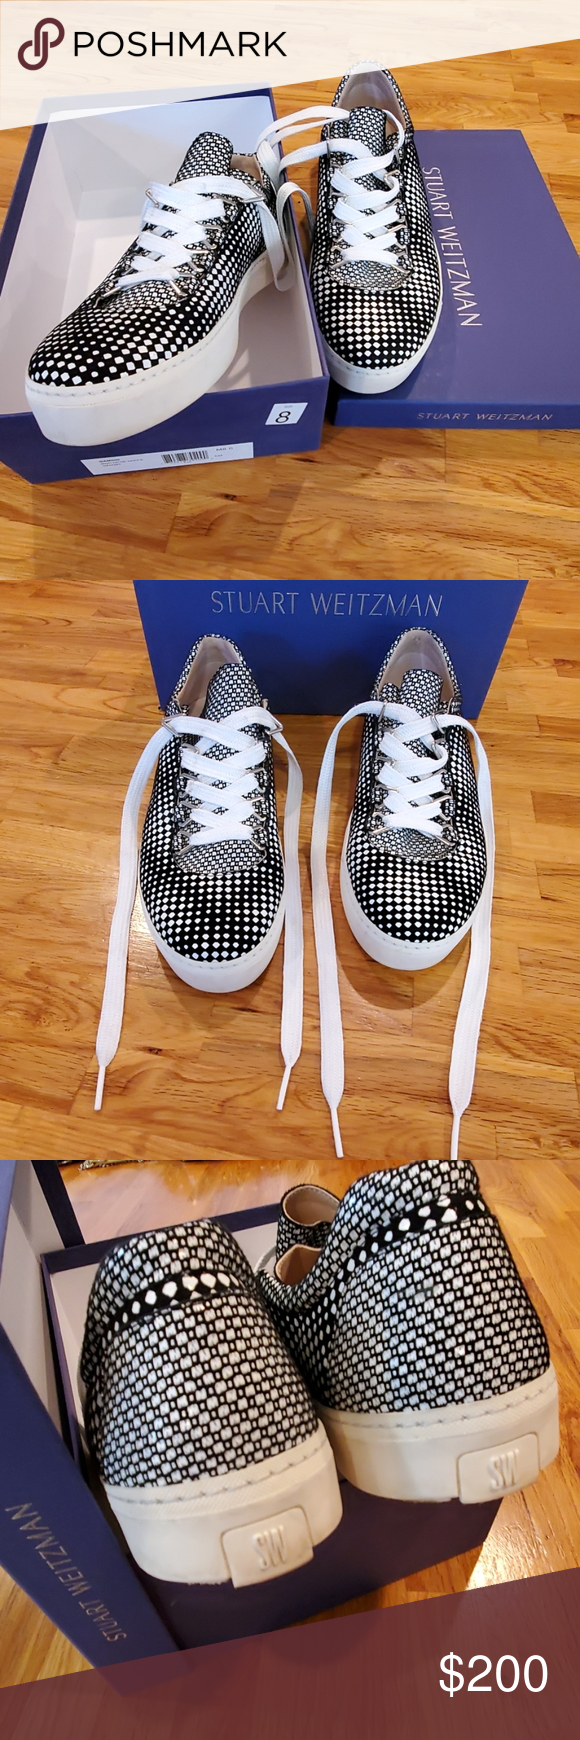 Stuart Weitzman Sneakers Stuart Weitzman Gaming black & white Optic Nappa sneakers. Made in Spain. I ❤ these shoes! I wear sz 8 Stuart Weitzman heels, but these flat sneakers are a full size too big even with socks. EUC, like new without flaws or wear & tear to material or interior insoles. Had them on 2-3 times max.